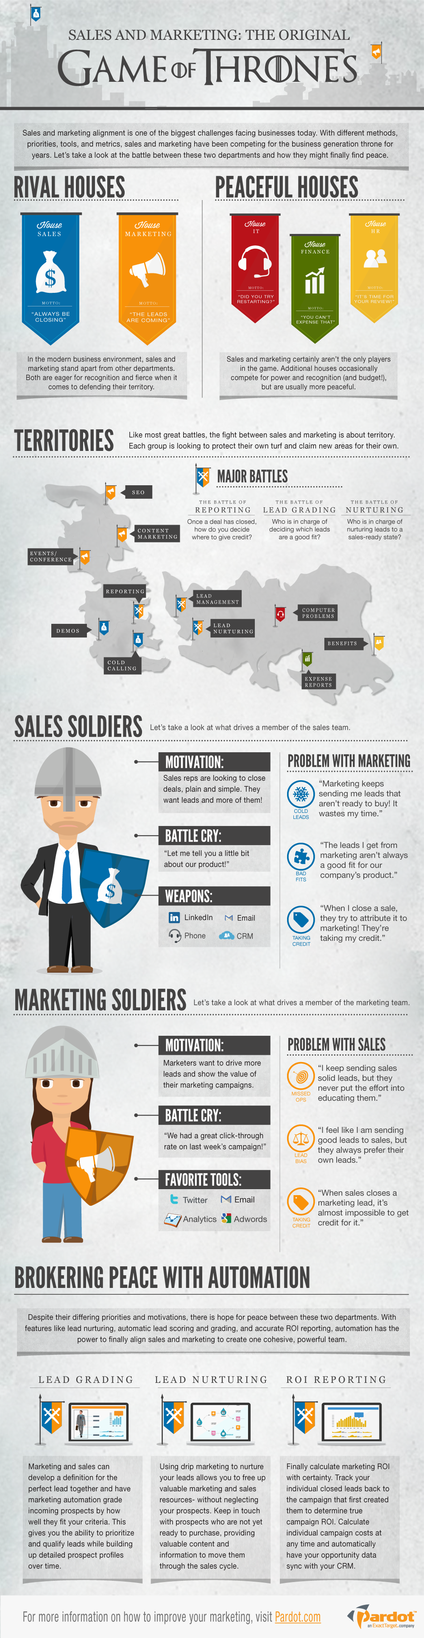 Sales vs. Marketing: The Original Game of Thrones [#INFOGRAPHIC] - An Infographic from Pardot